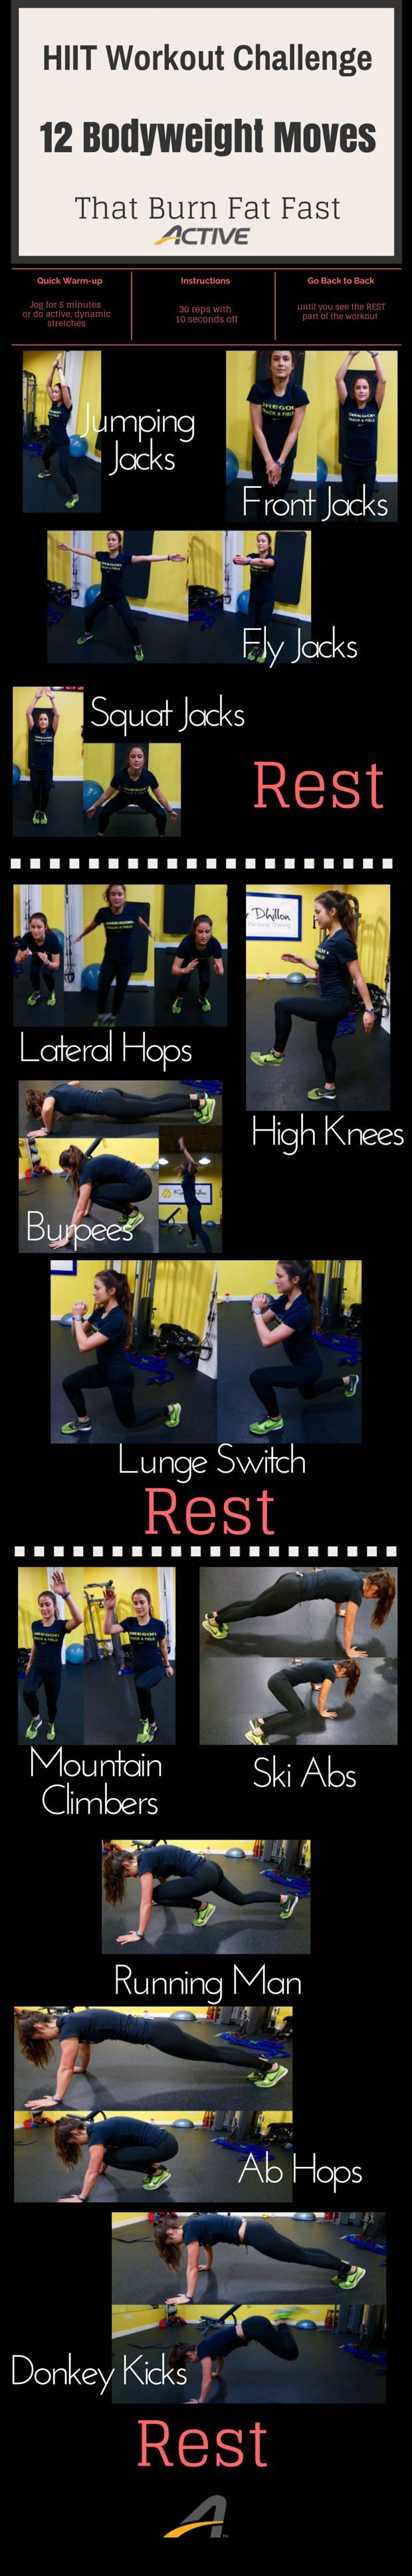 HIIT Workout Challenge: 12 Bodyweight Moves That Burn Fat Fast :)